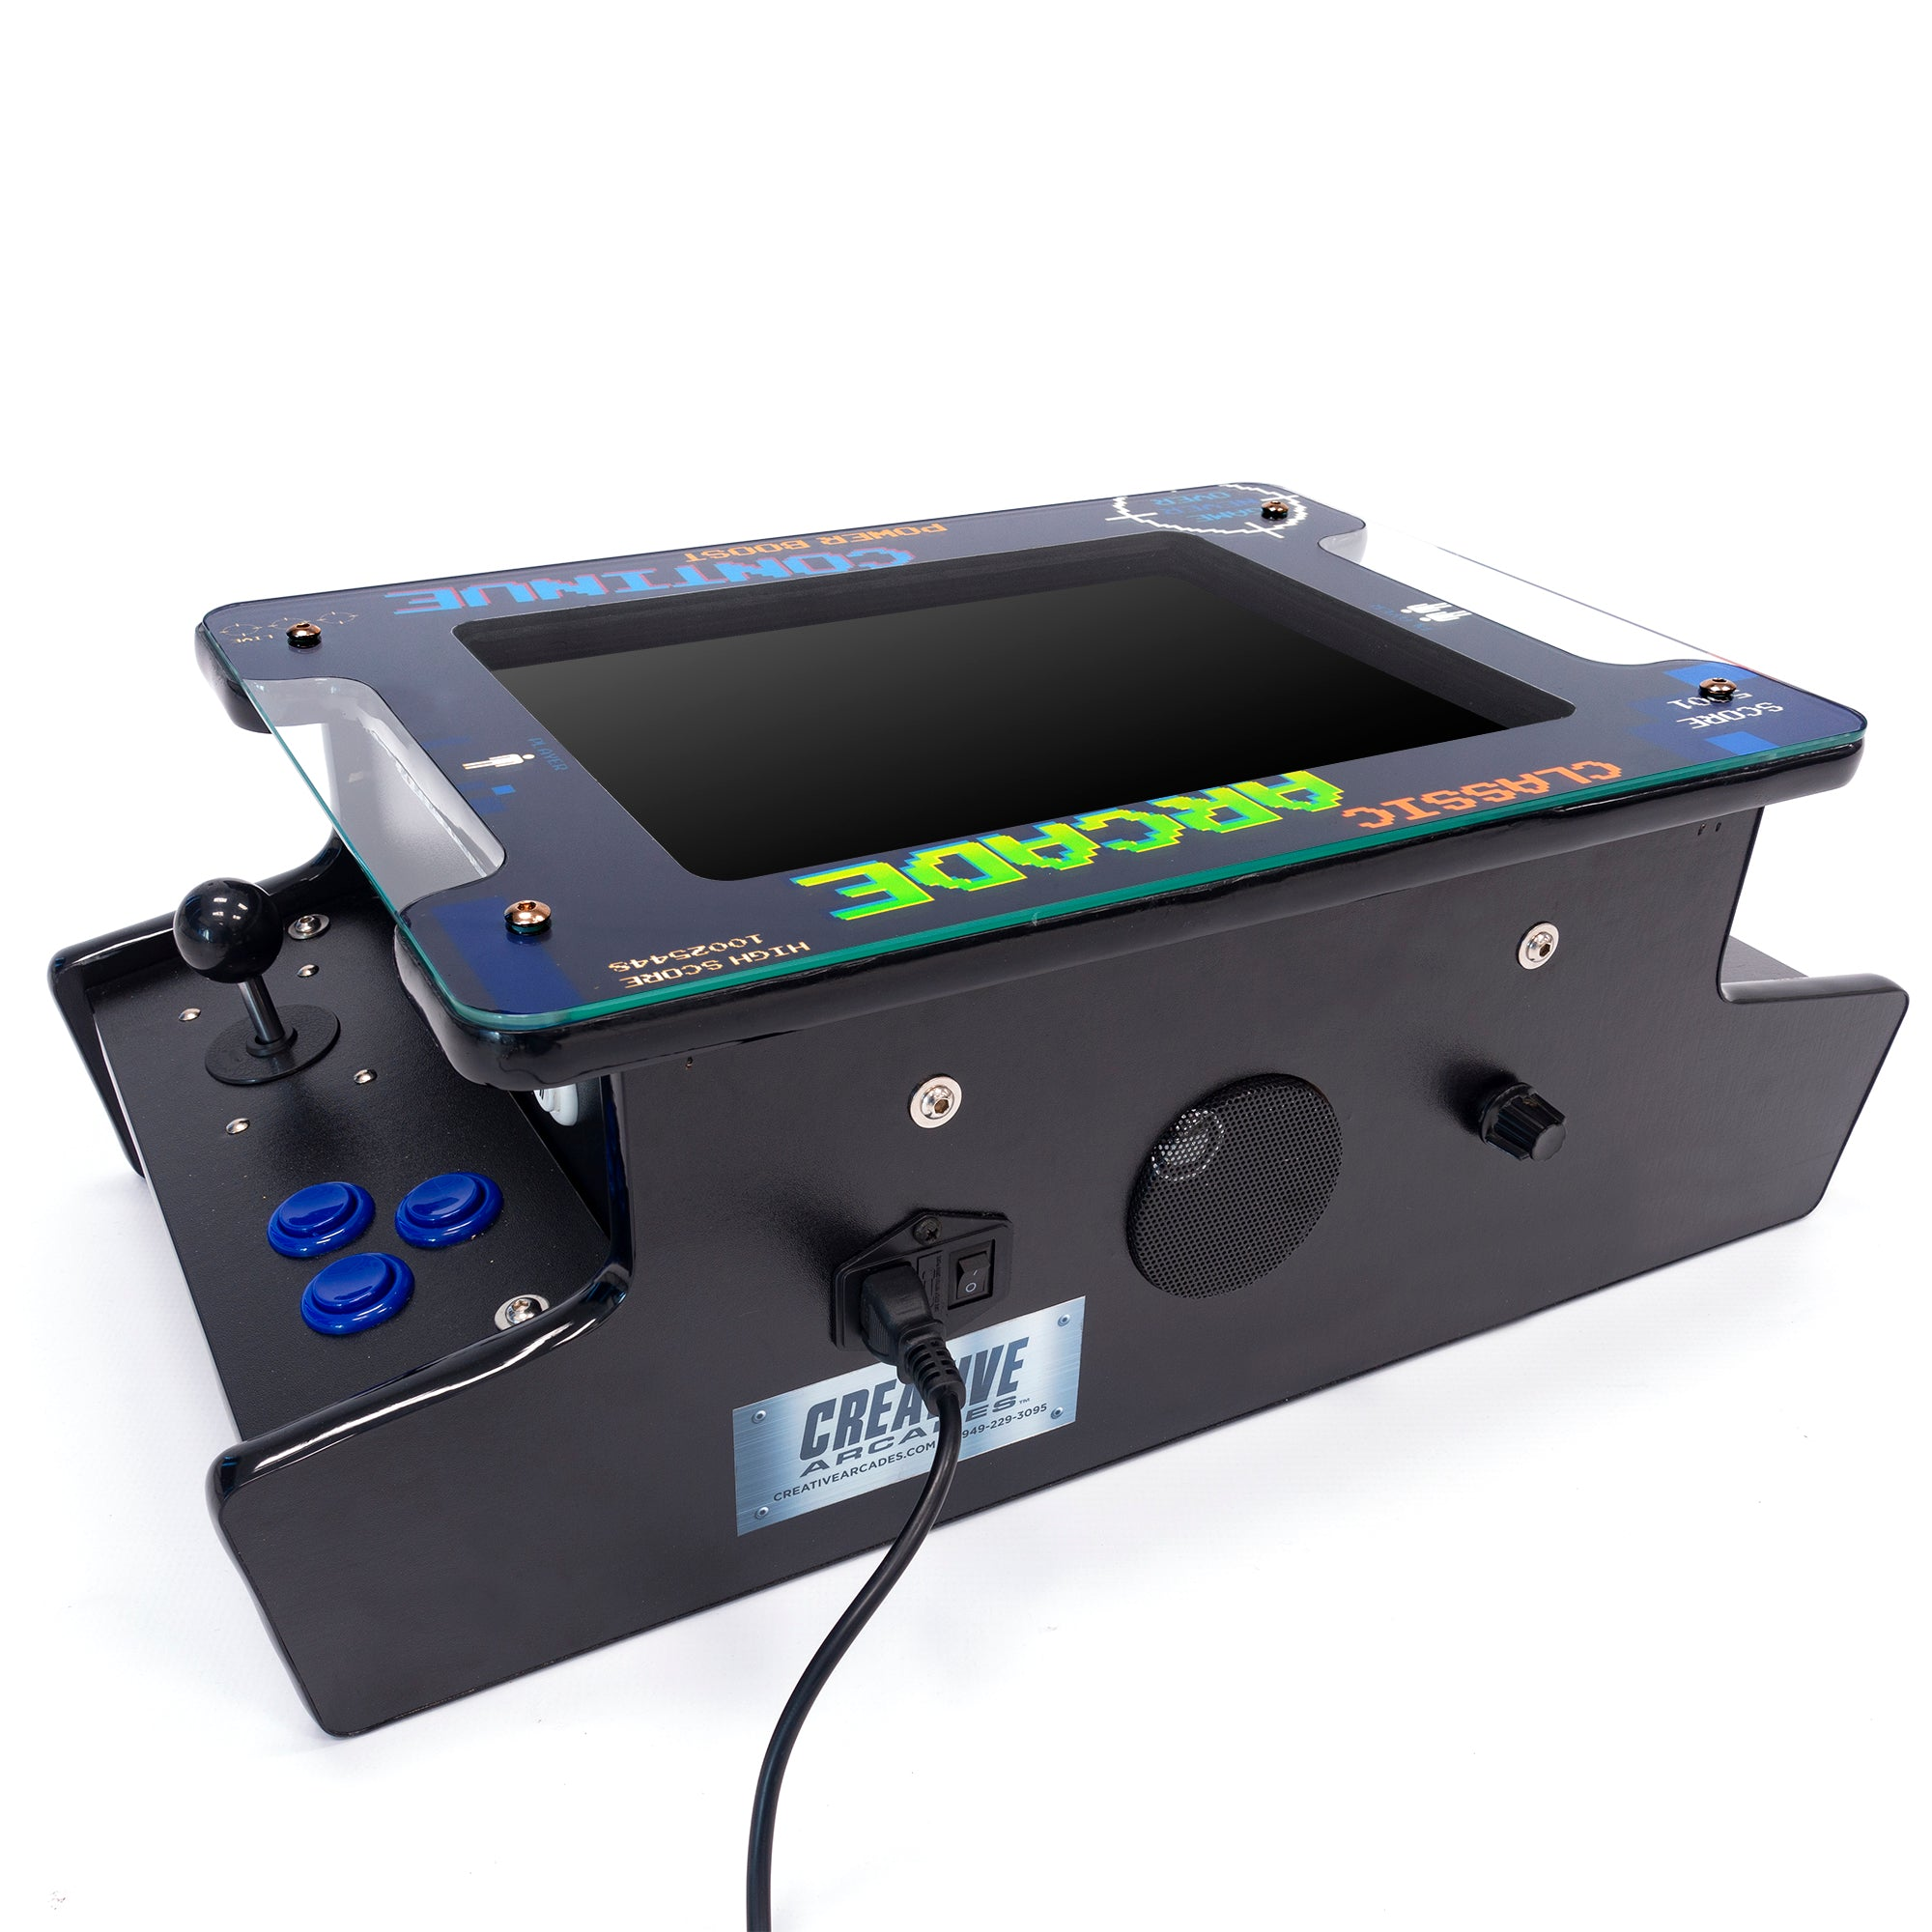 2P 412 Games Mini Tabletop Arcade Speaker and Volume Control